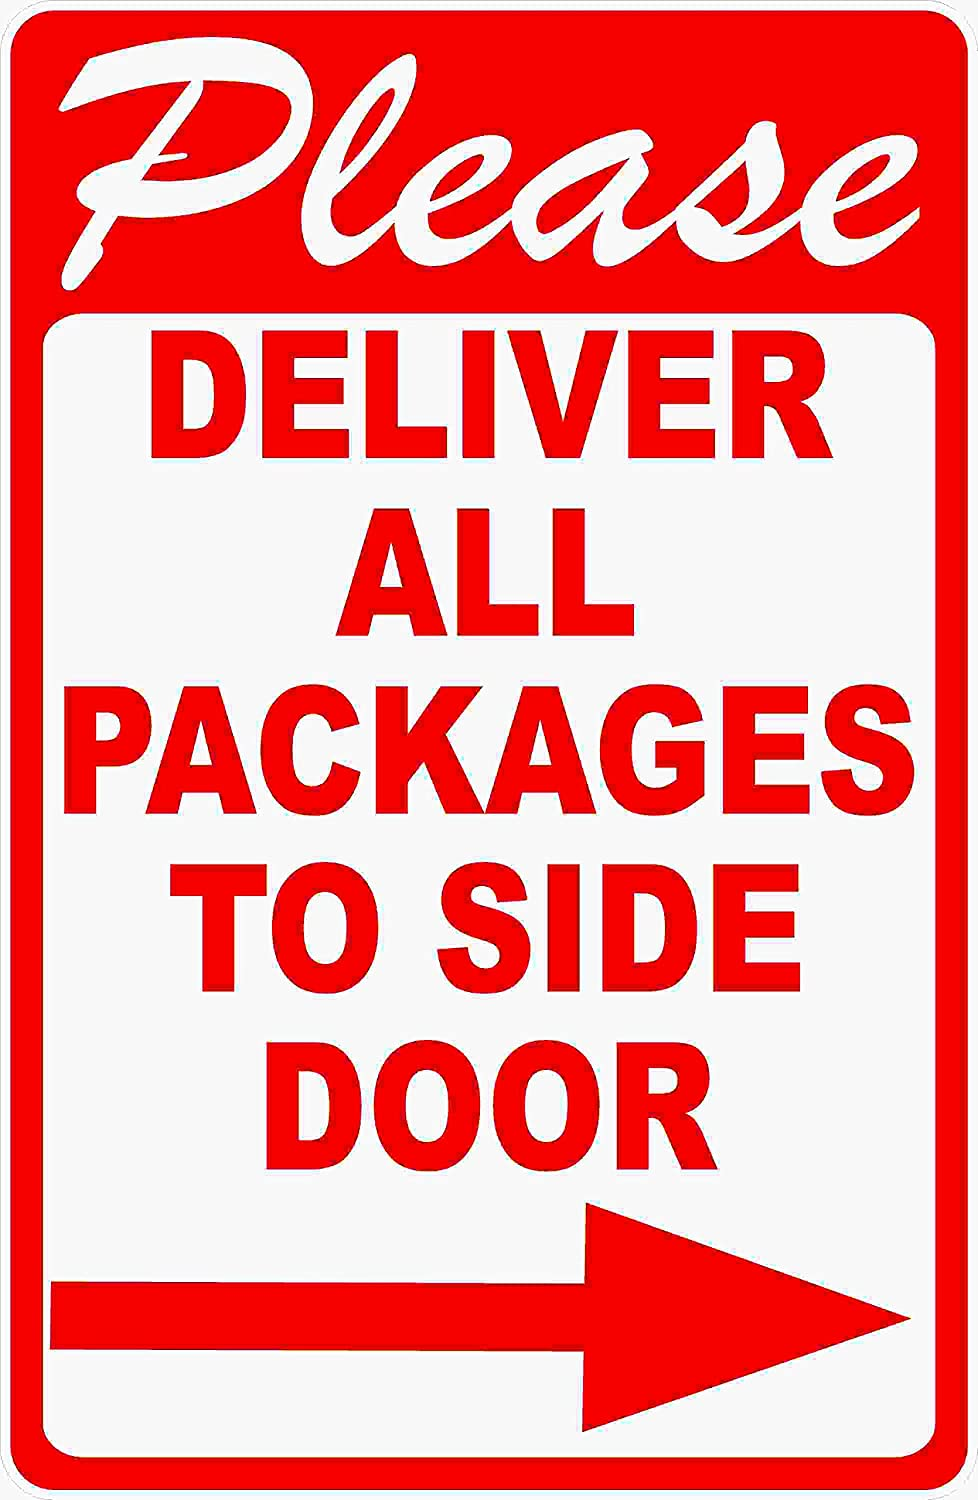 Please Deliver All Packages to Side Door Sign w//Right Arrow 9x12 Metal. Free Bonus Gift w//Purchase Package Delivery Rules